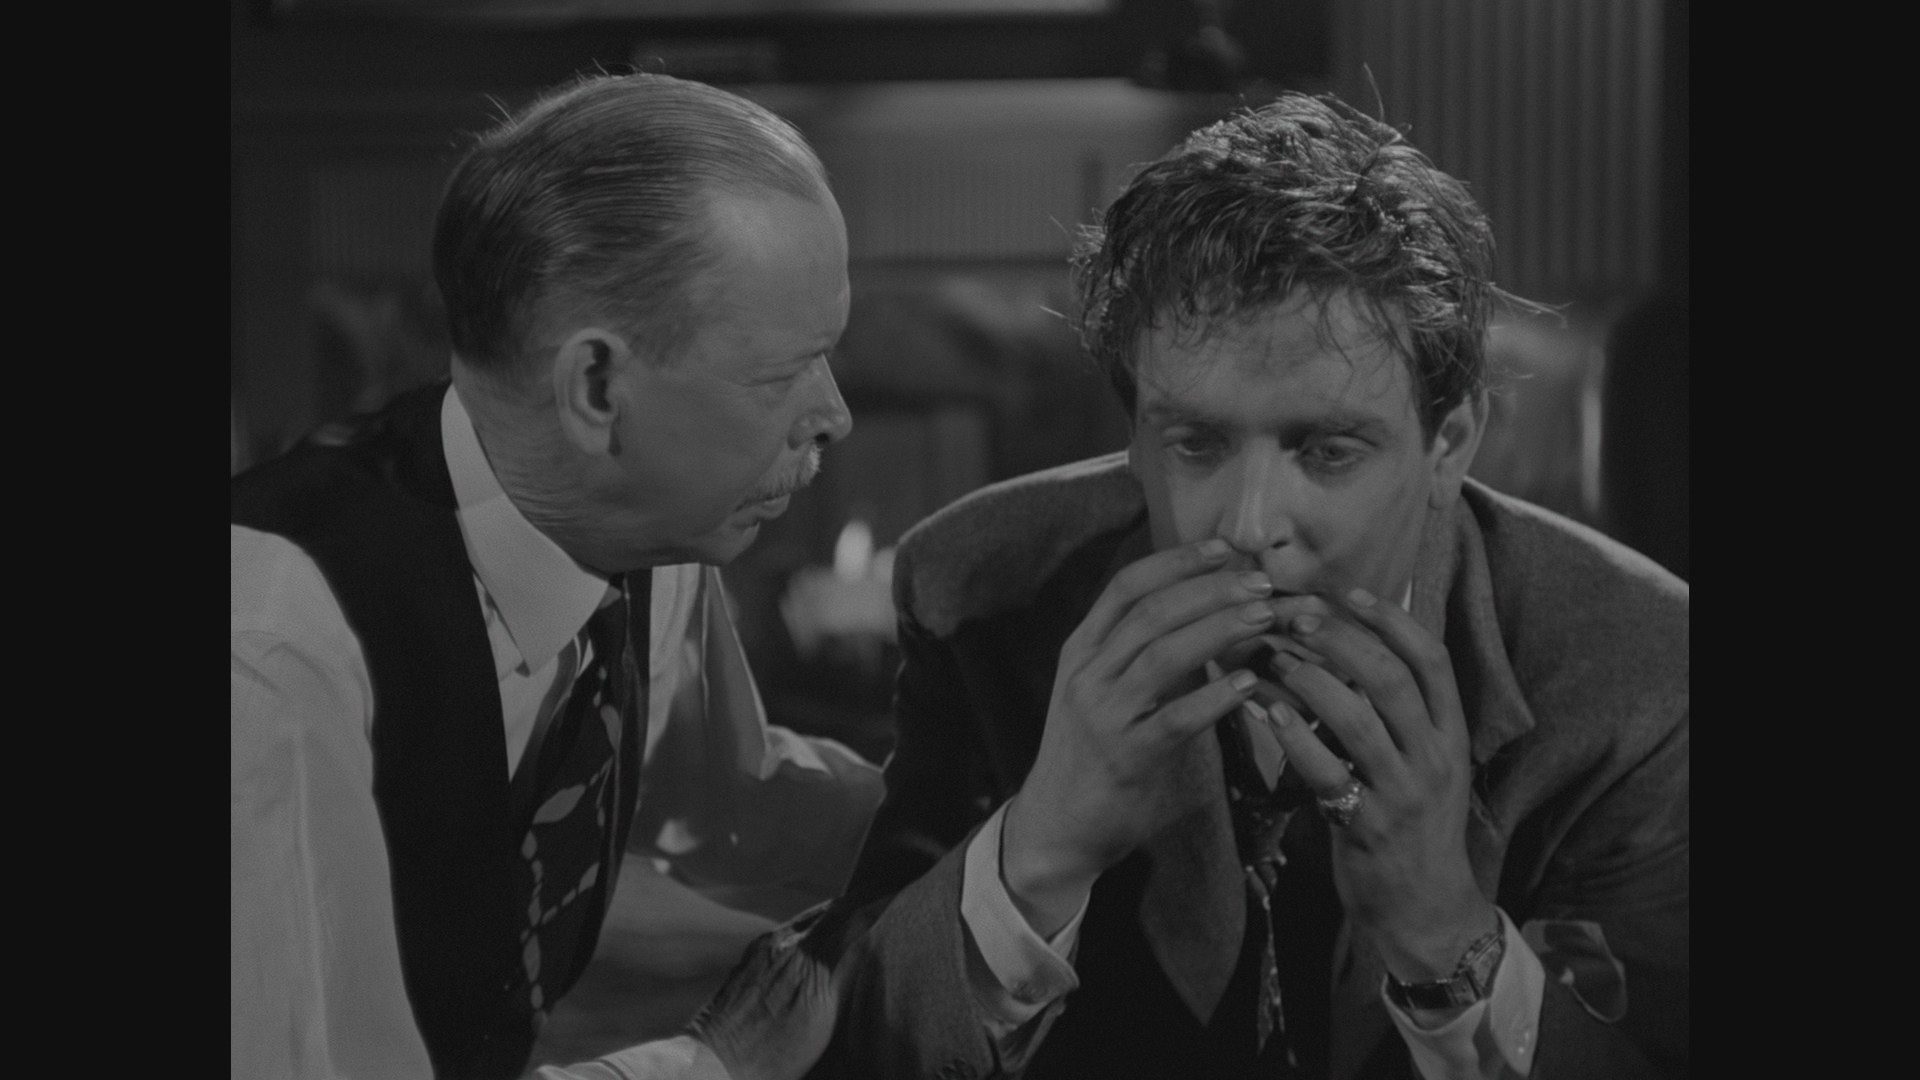 Frank Craven and Robert Paige in Son of Dracula (1943)